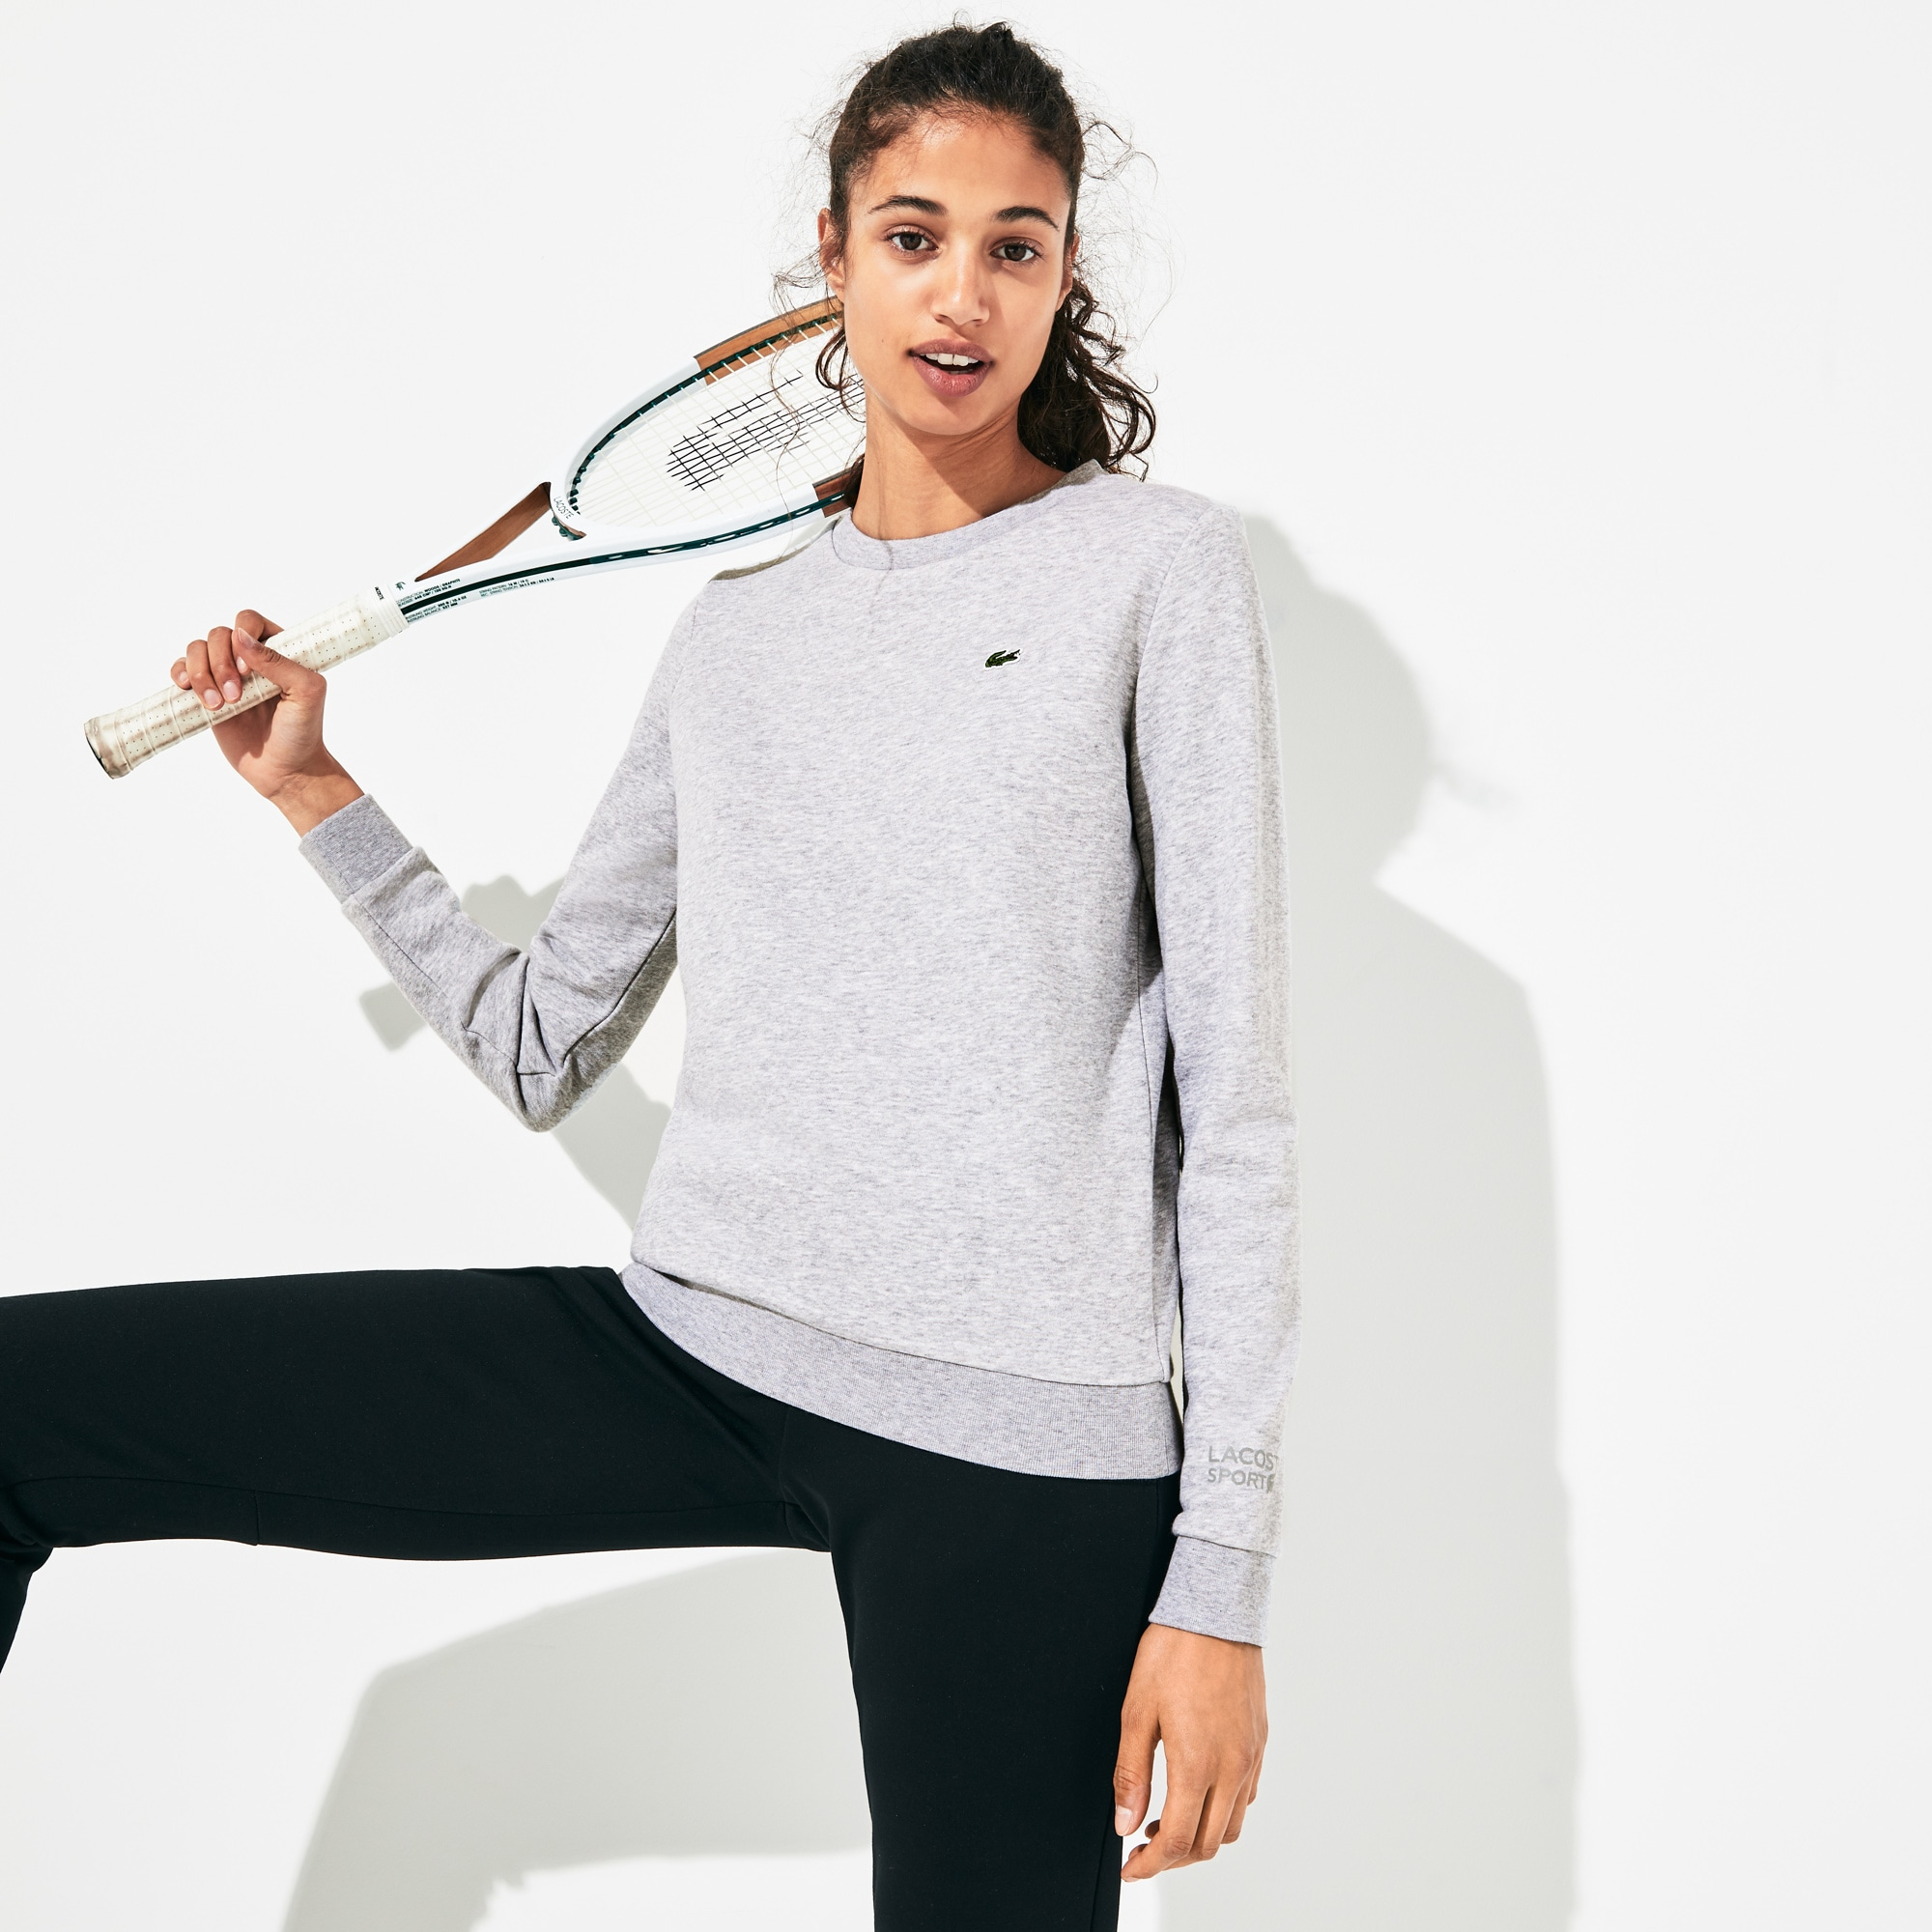 44843863 Women's SPORT Tennis Cotton Fleece Sweatshirt